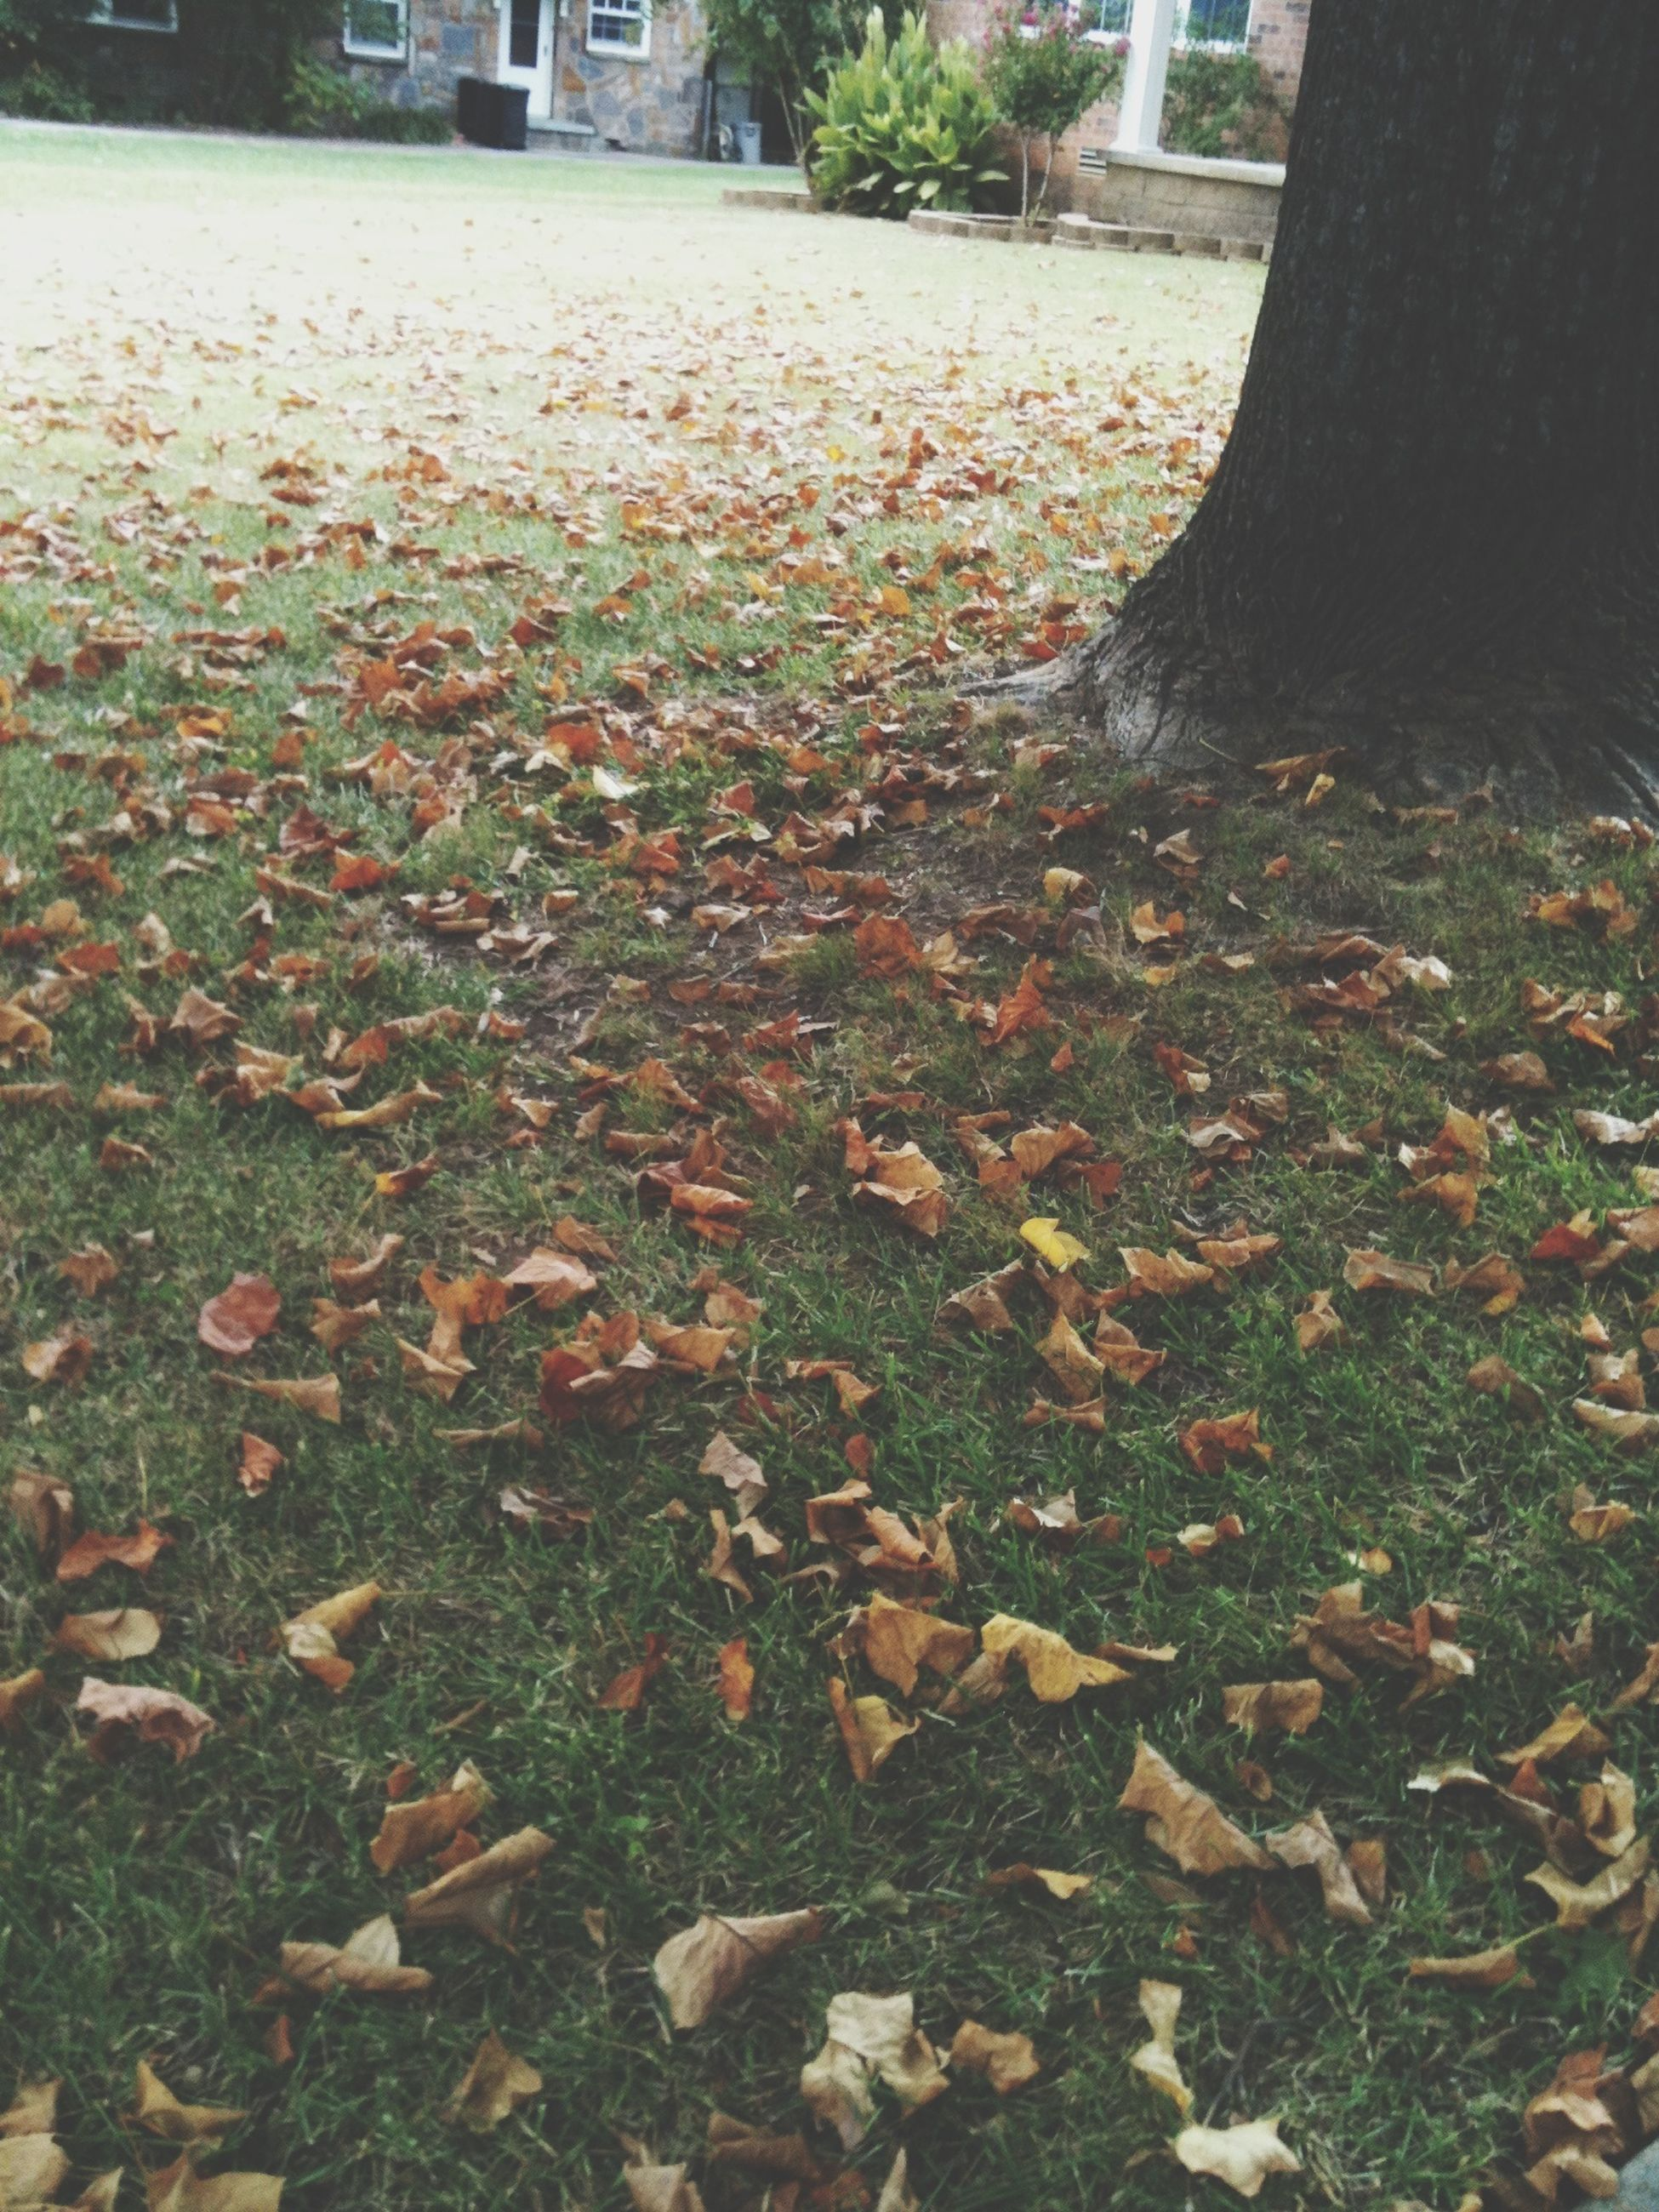 autumn, leaf, change, grass, fallen, season, park - man made space, leaves, nature, dry, growth, falling, tree, day, field, outdoors, plant, footpath, bench, lawn